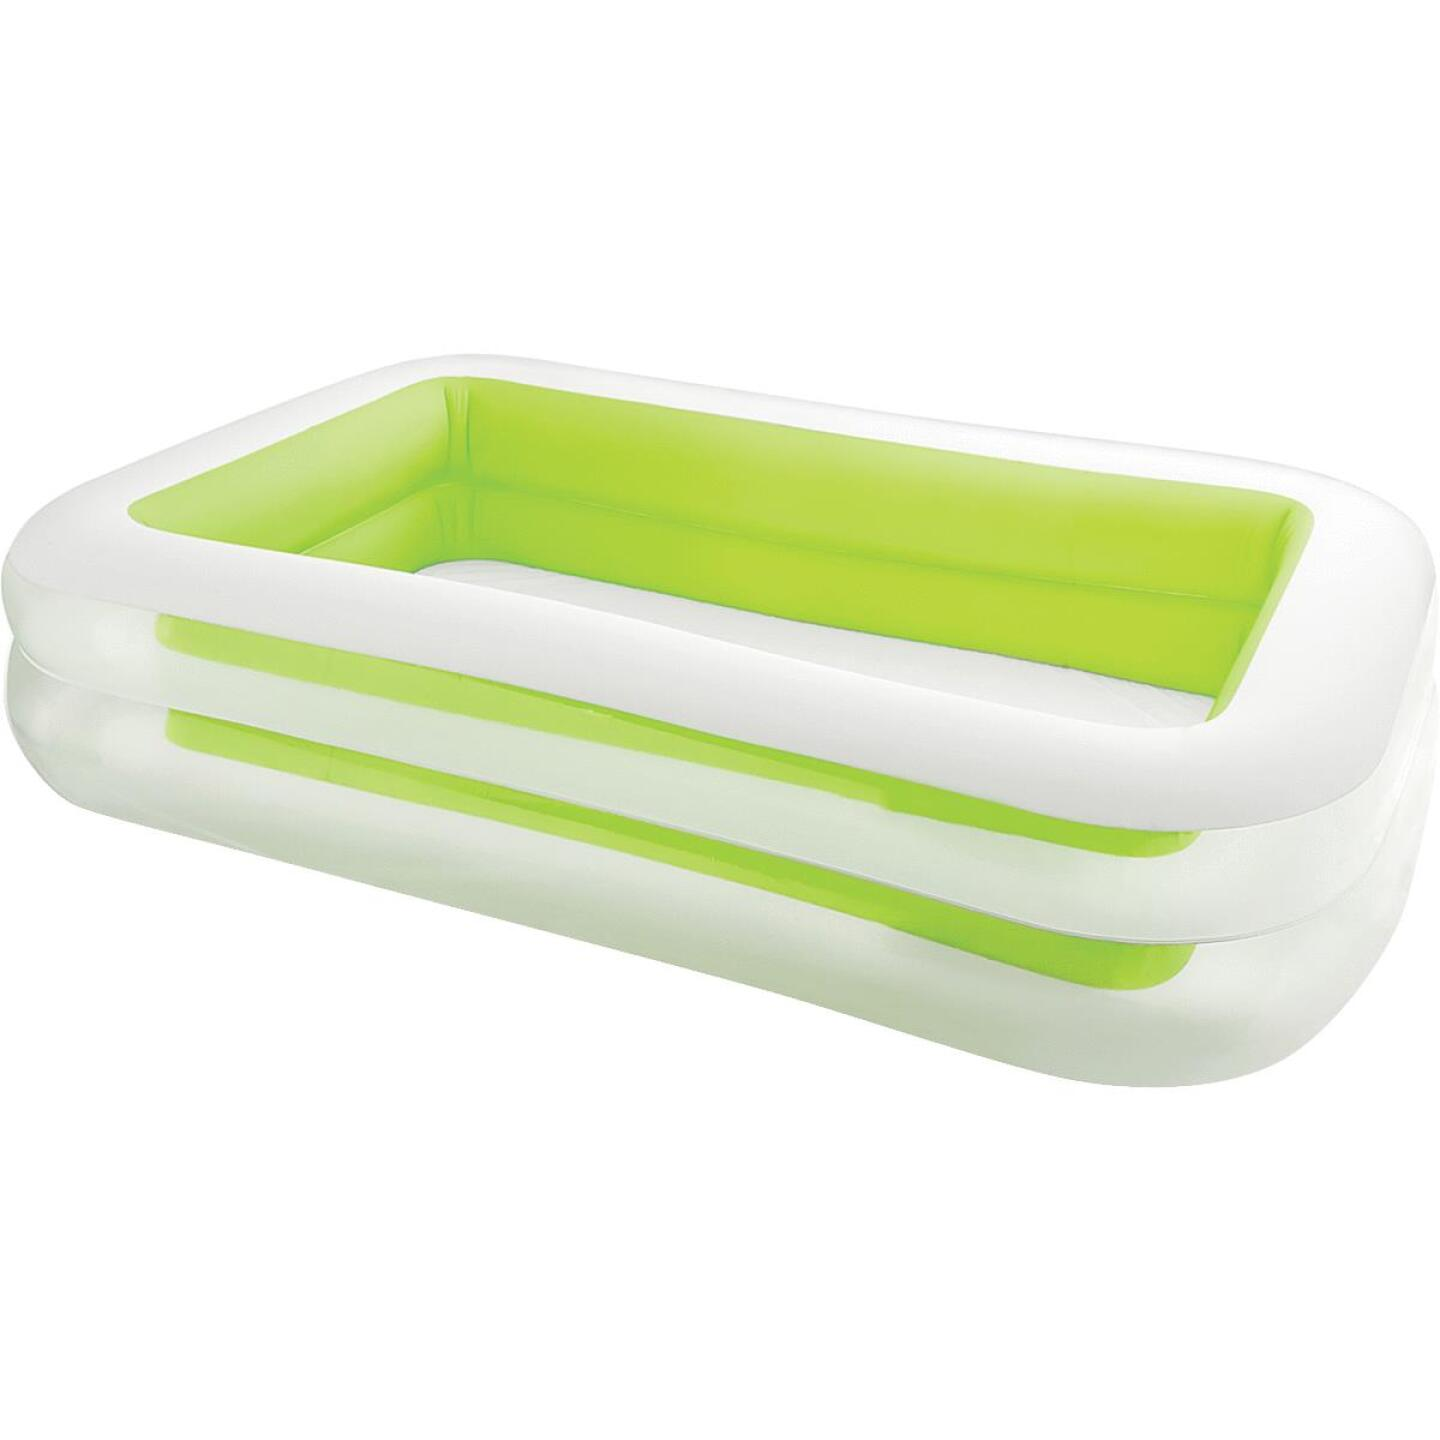 Intex 69 In. W. x 103 In. L. x 22 In. D. Green Vinyl Family Inflatable Swimming Pool Image 1